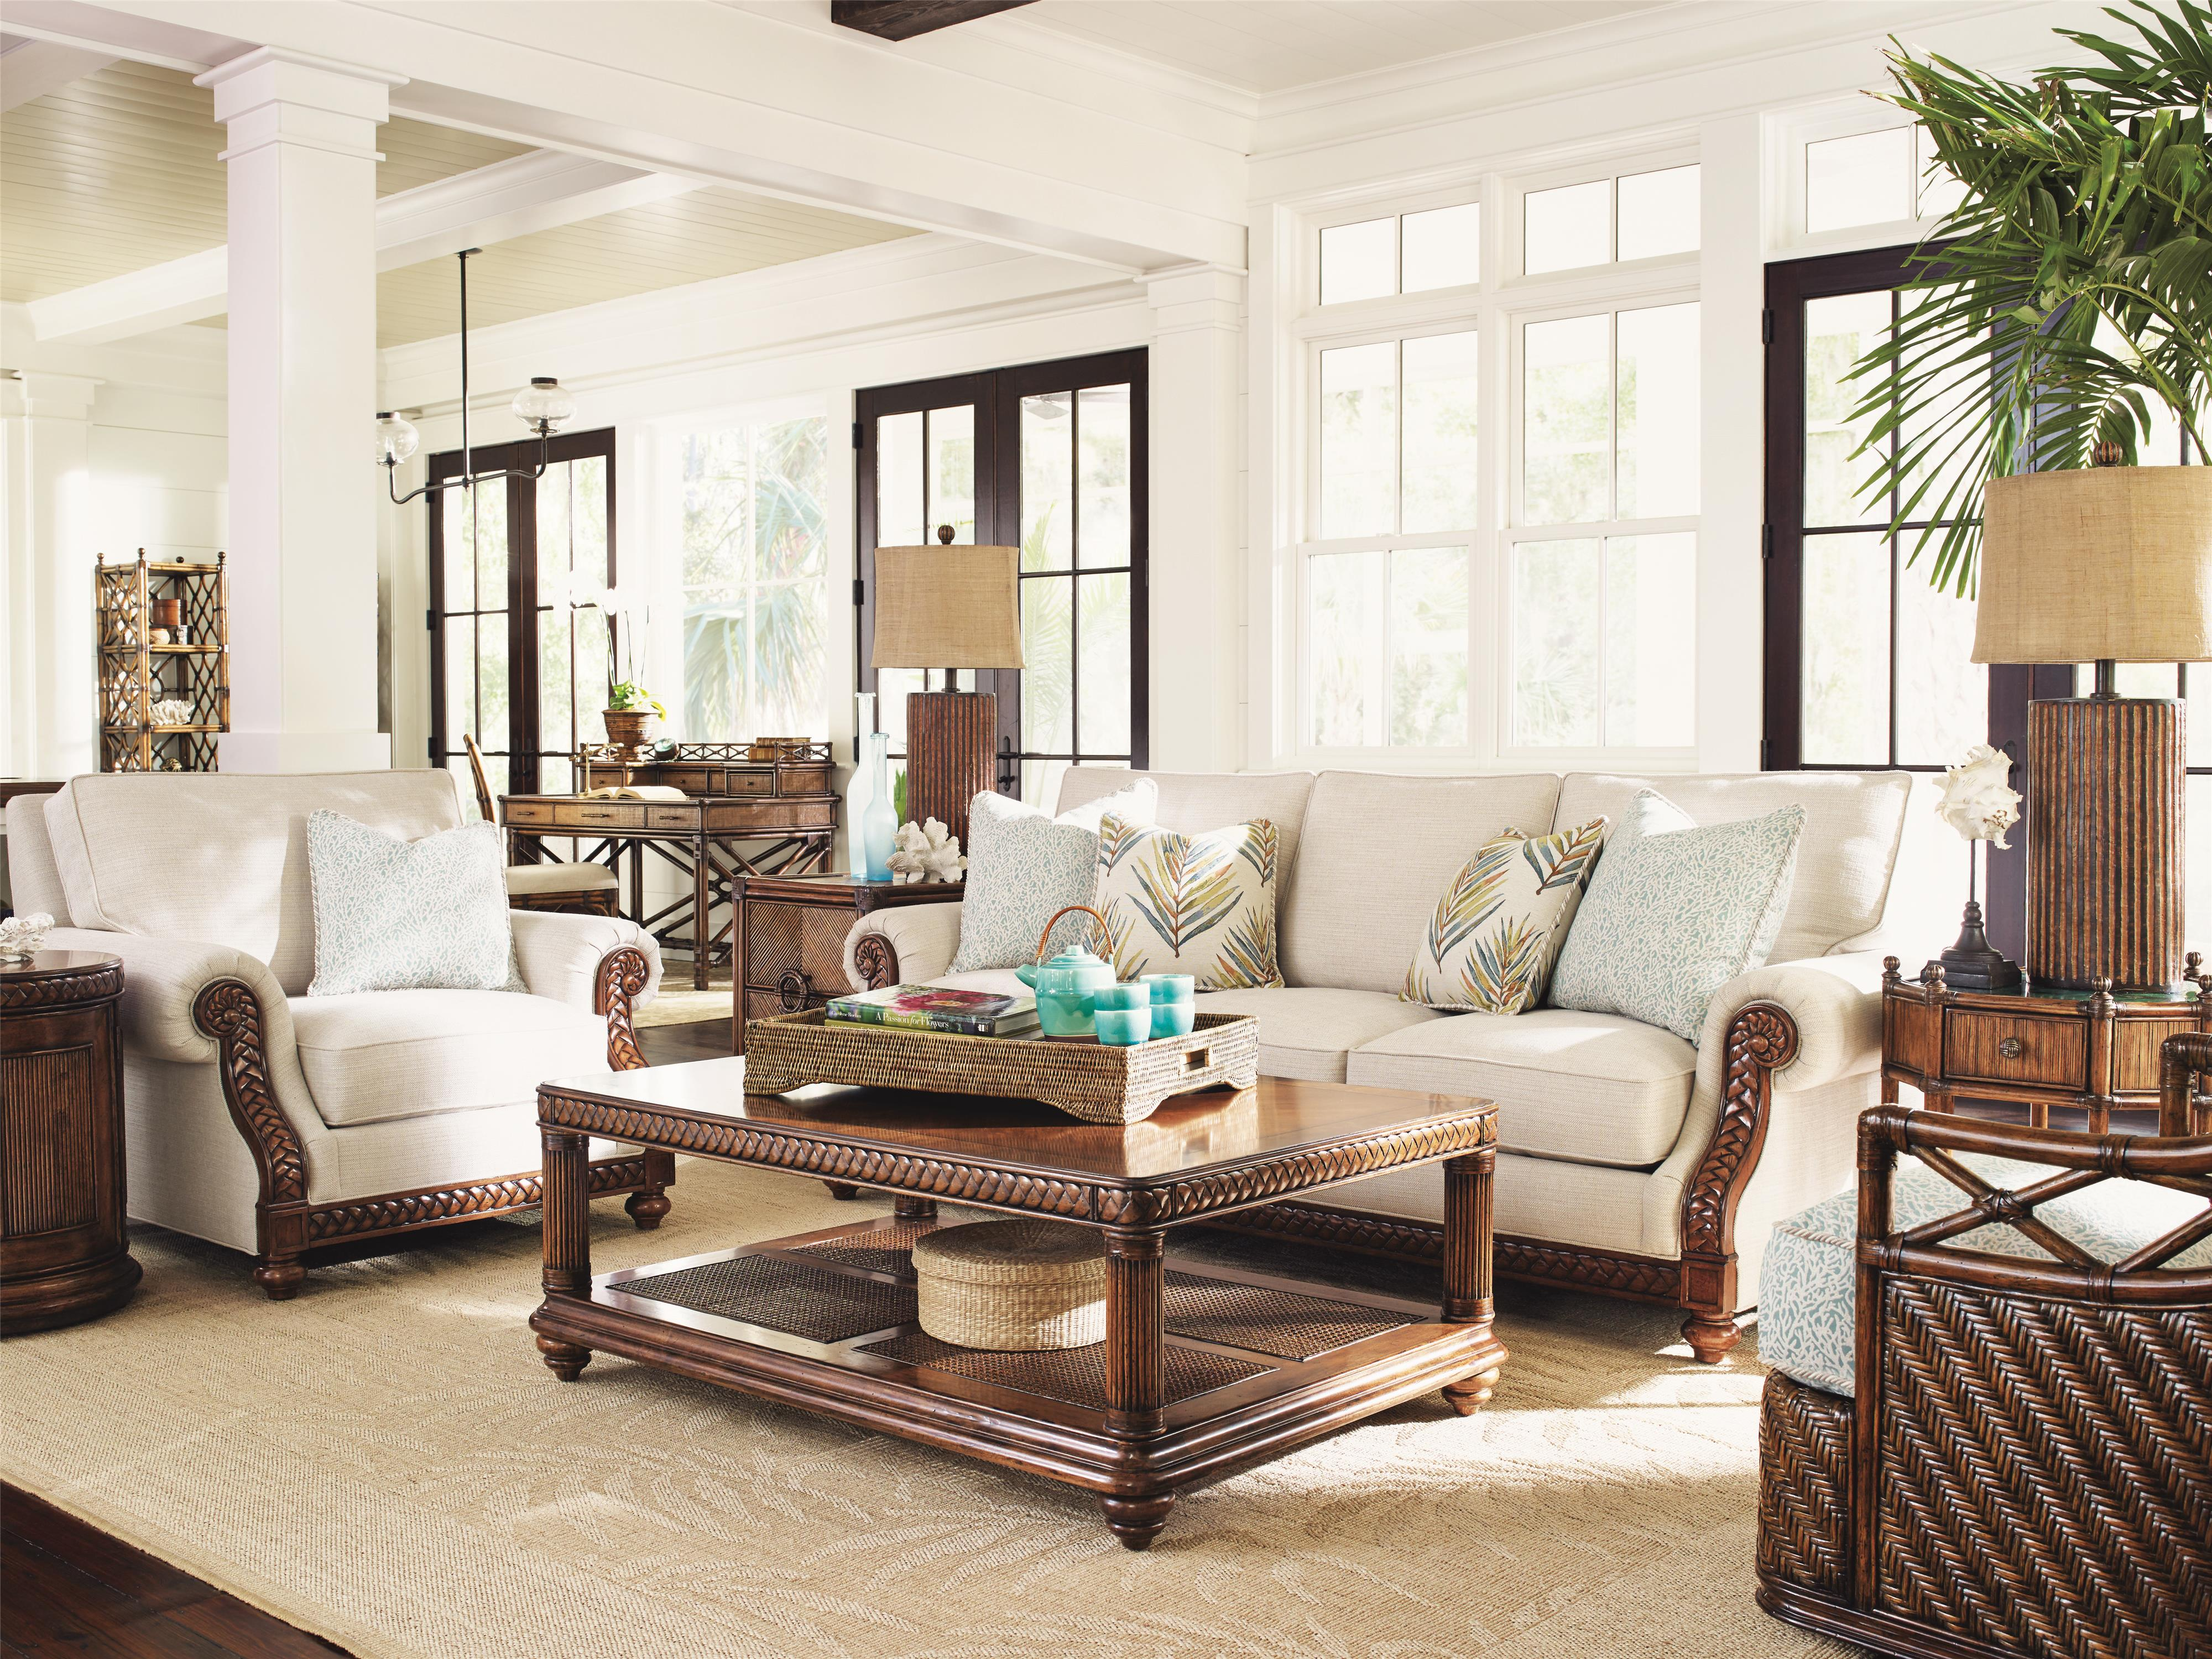 Tommy Bahama Home Bali Hai Stationary Living Room Group - Item Number: 593 Living Room Group 1